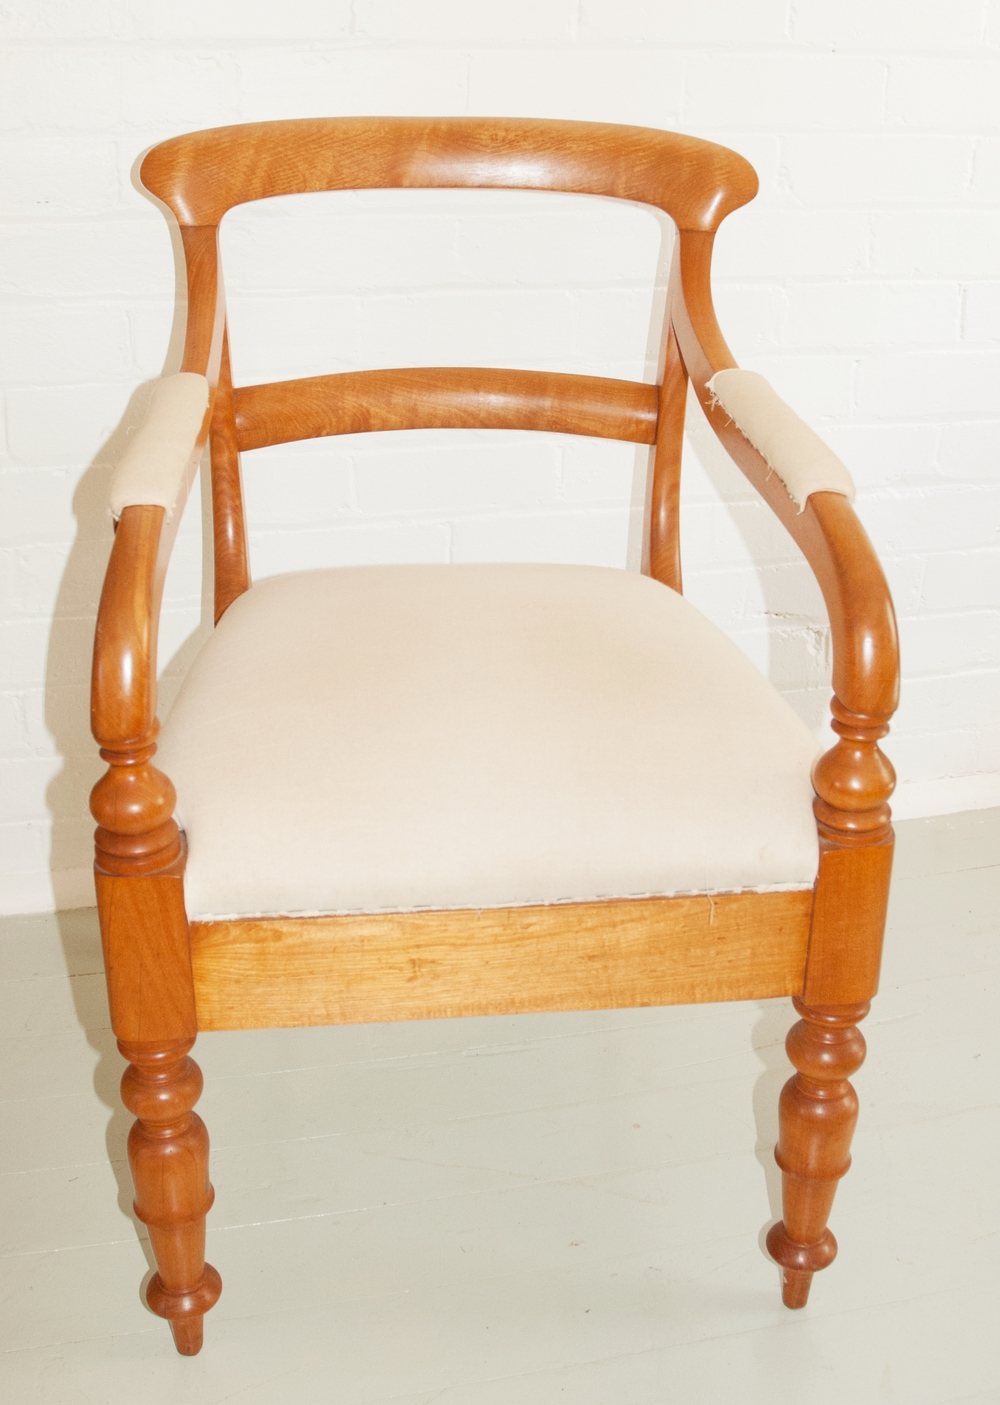 Antique carver's chair.jpg